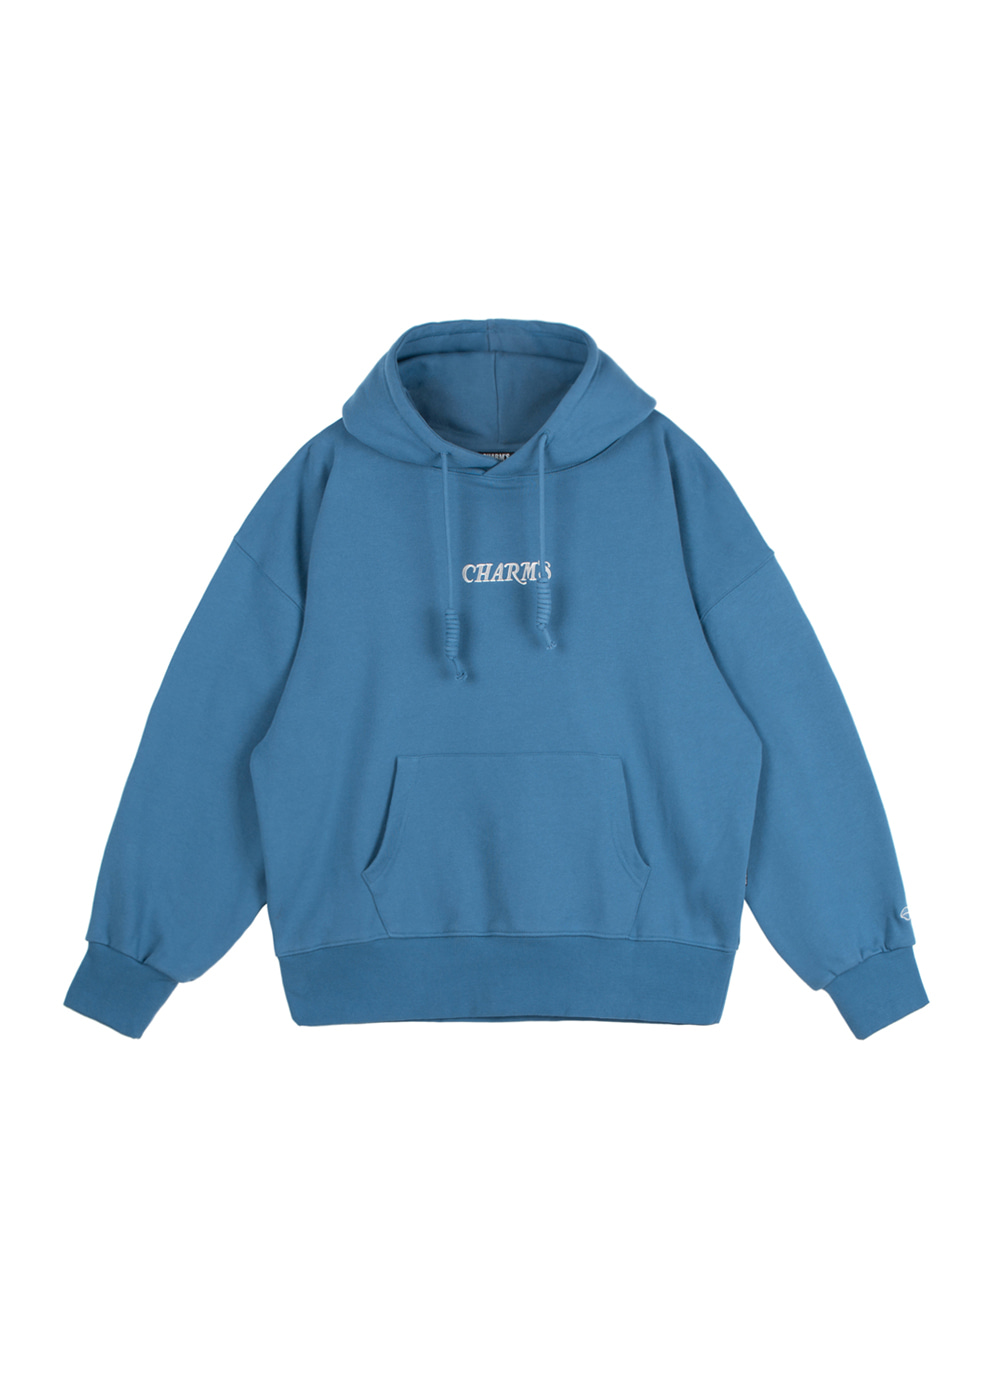 CHARMS WAVE LOGO HOODIE BL